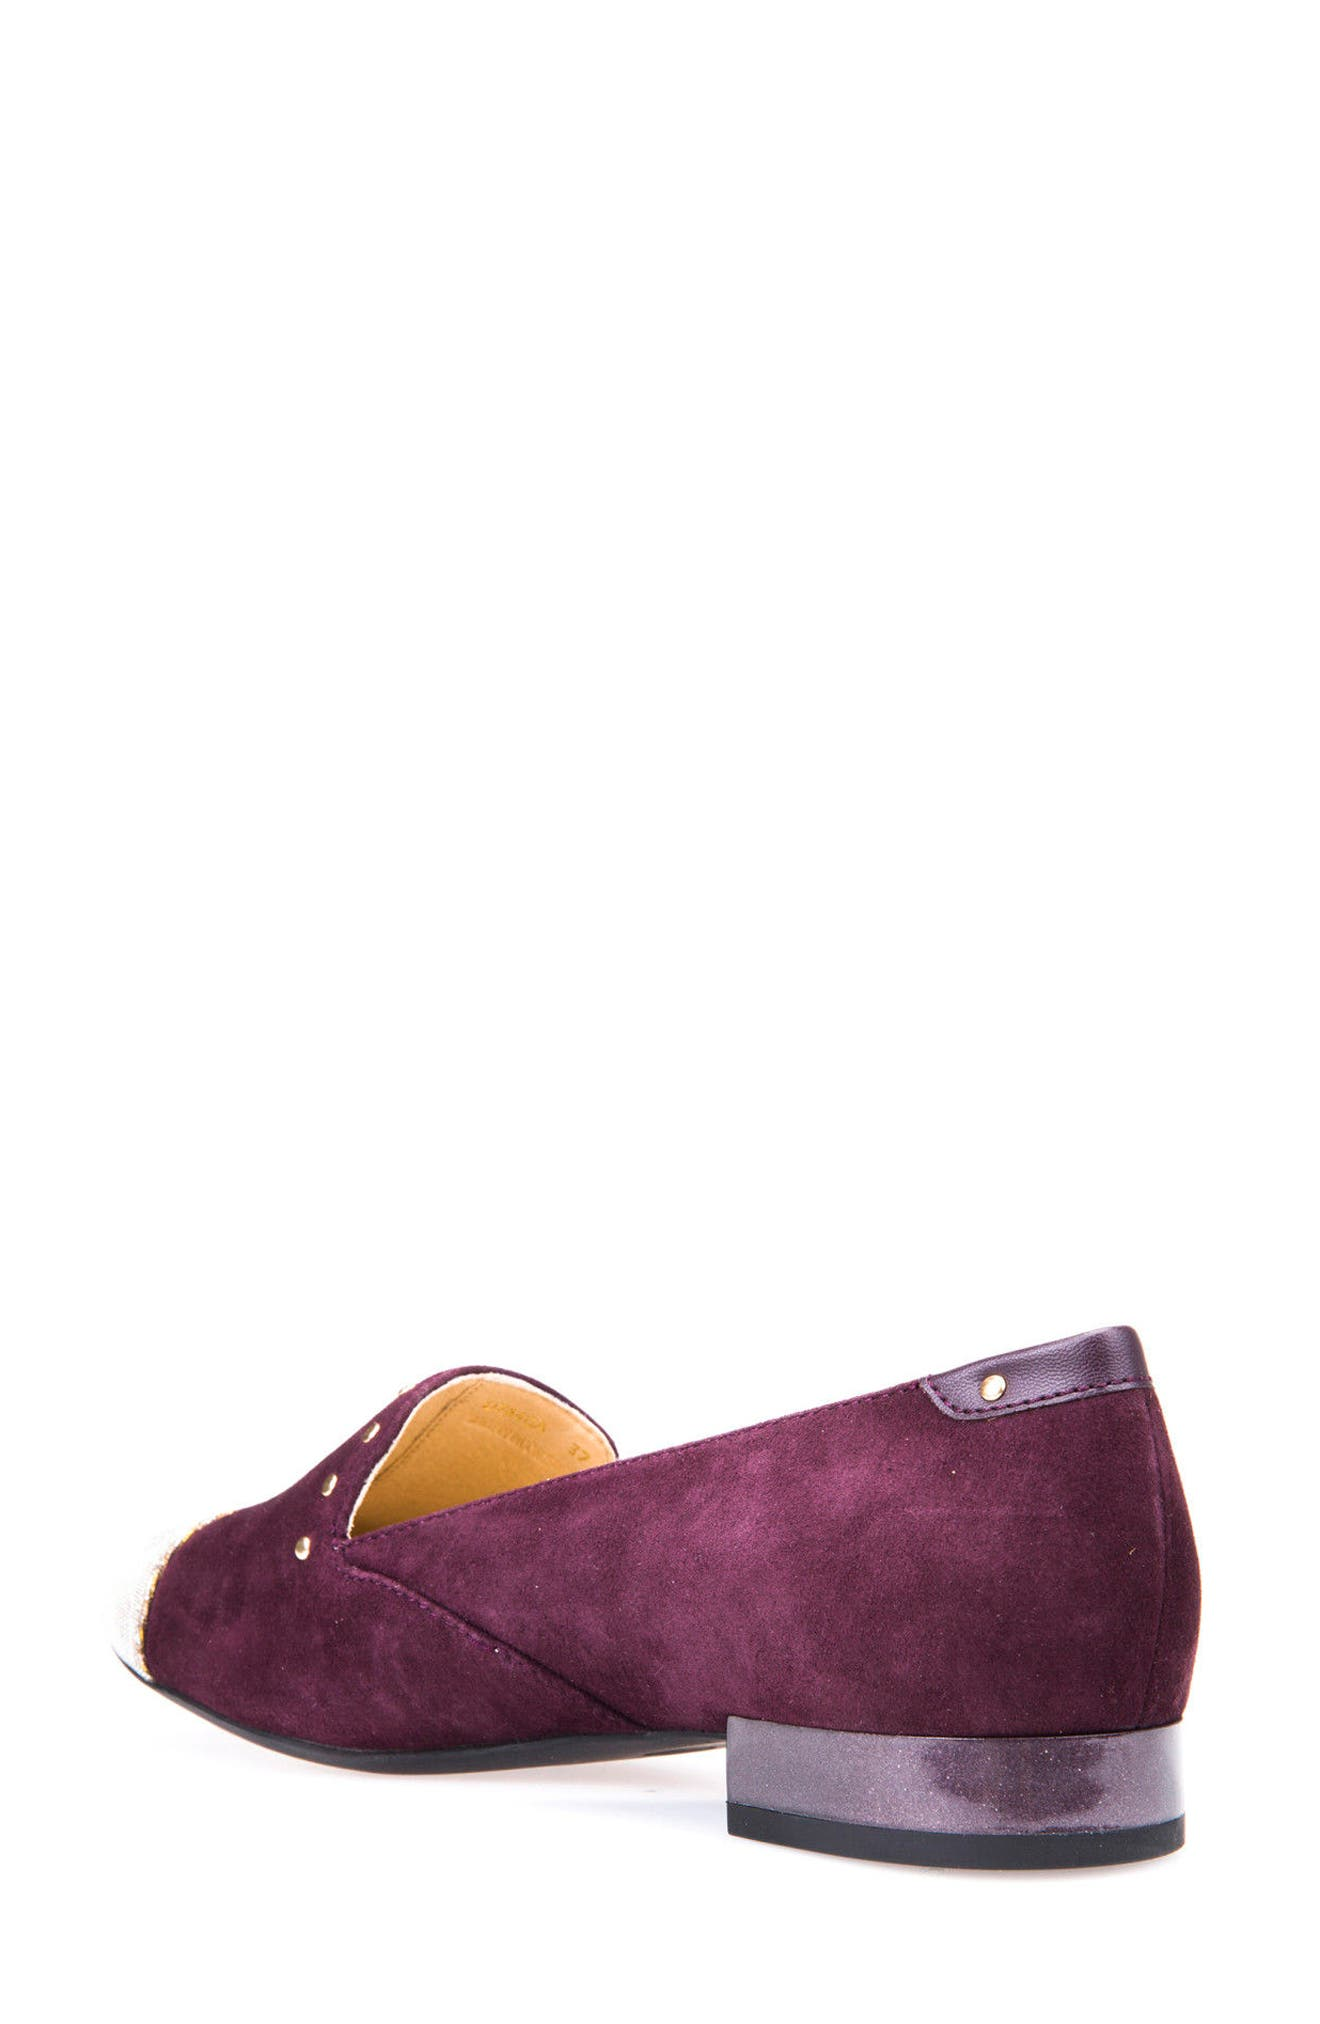 Wistrey Cap Toe Loafer,                             Alternate thumbnail 5, color,